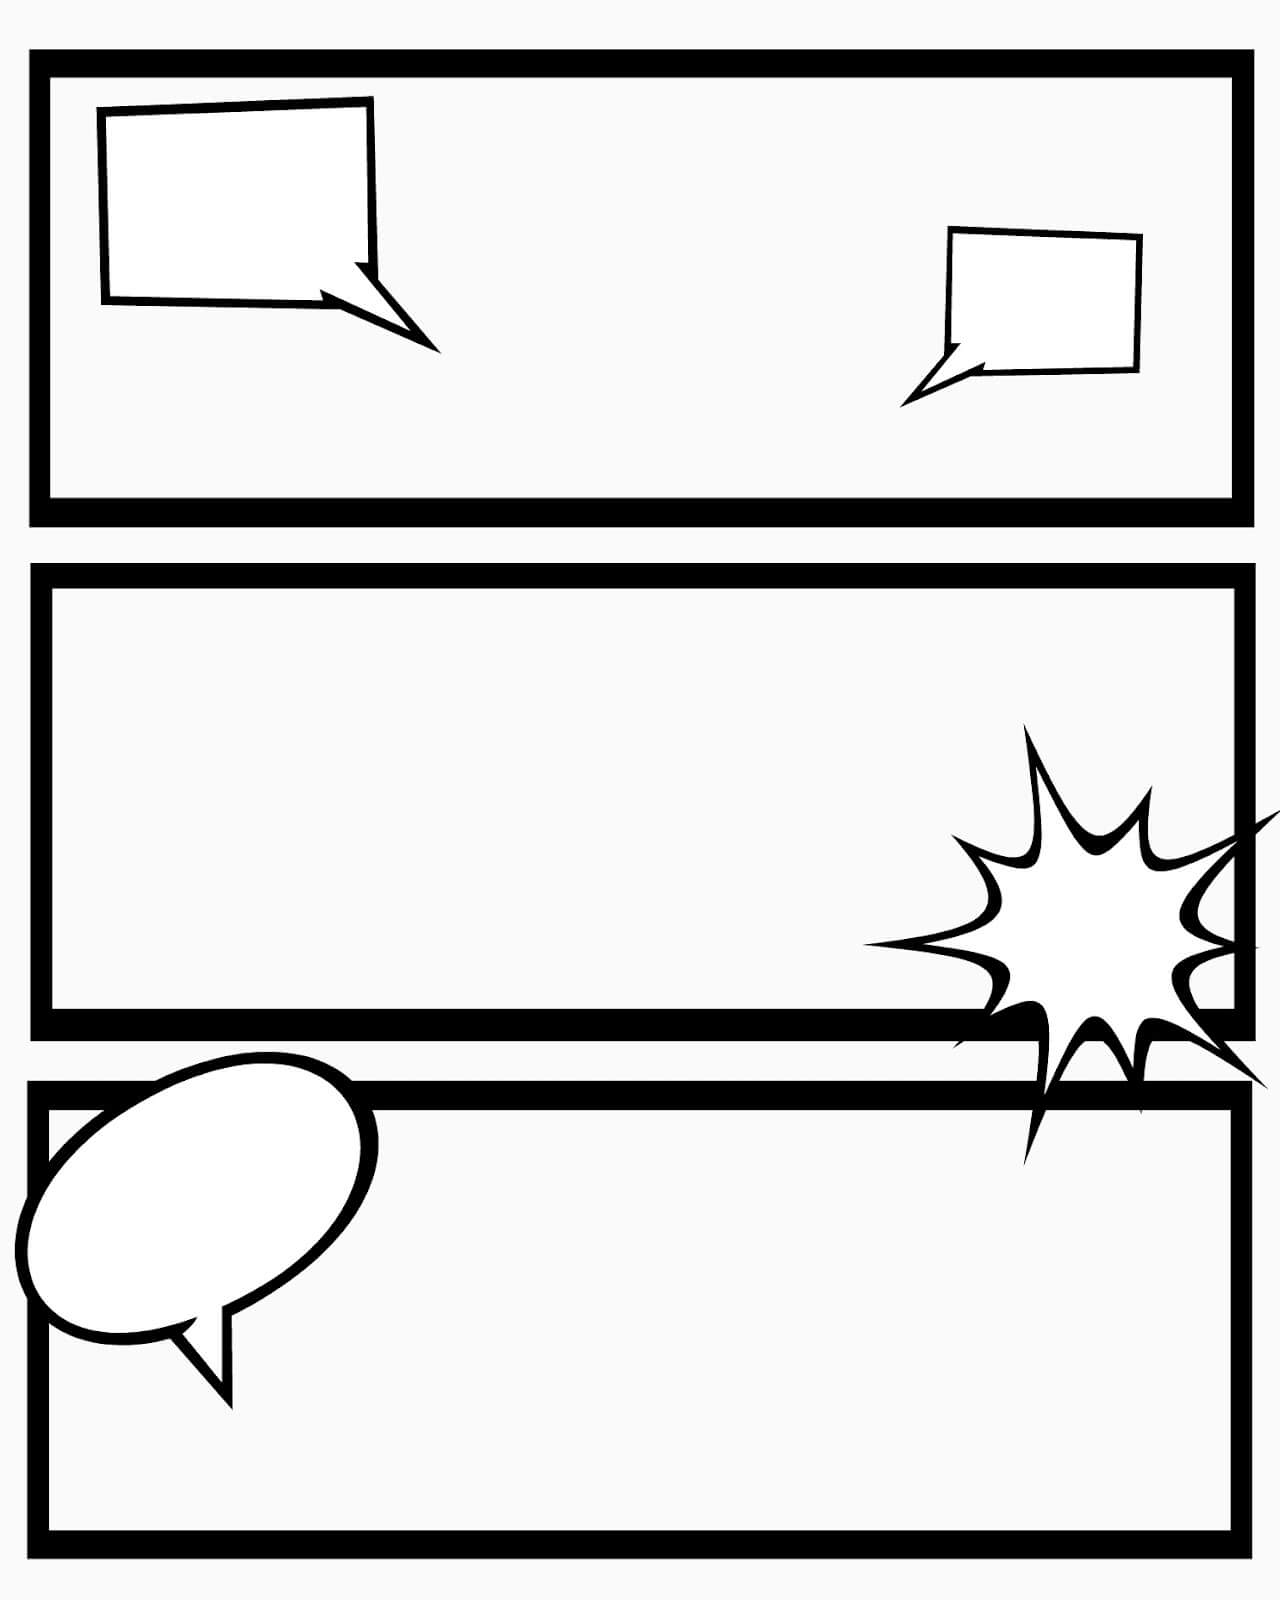 24 Images Of 8 Box Comic Strip Template With Blank Captions Intended For Printable Blank Comic Strip Template For Kids